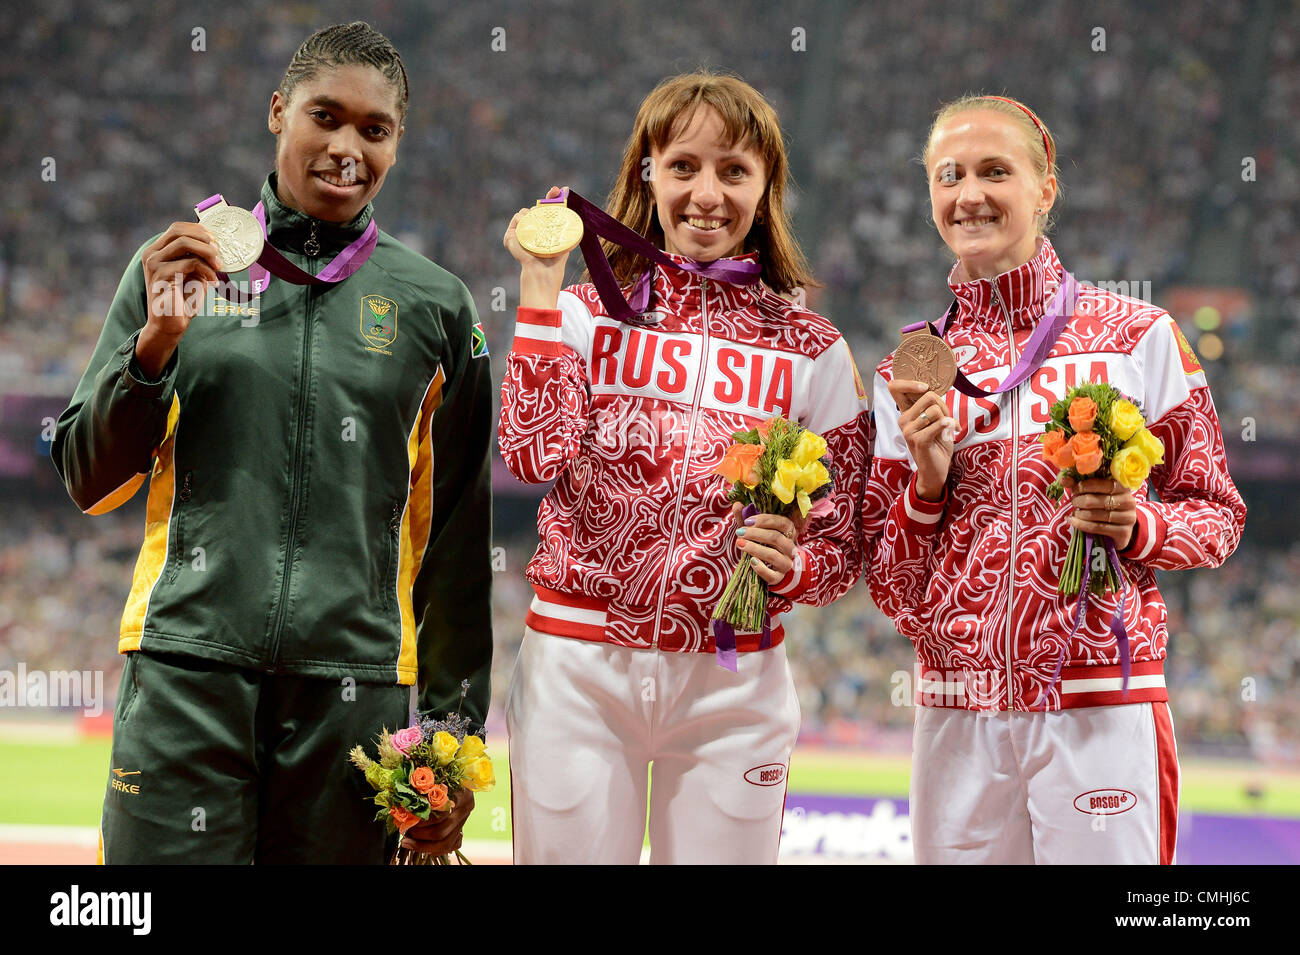 LONDON, ENGLAND - AUGUST 11, Caster Semenya of South Africa, Mariya Savinova and Ekaterina Poistogova of Russia - Stock Image